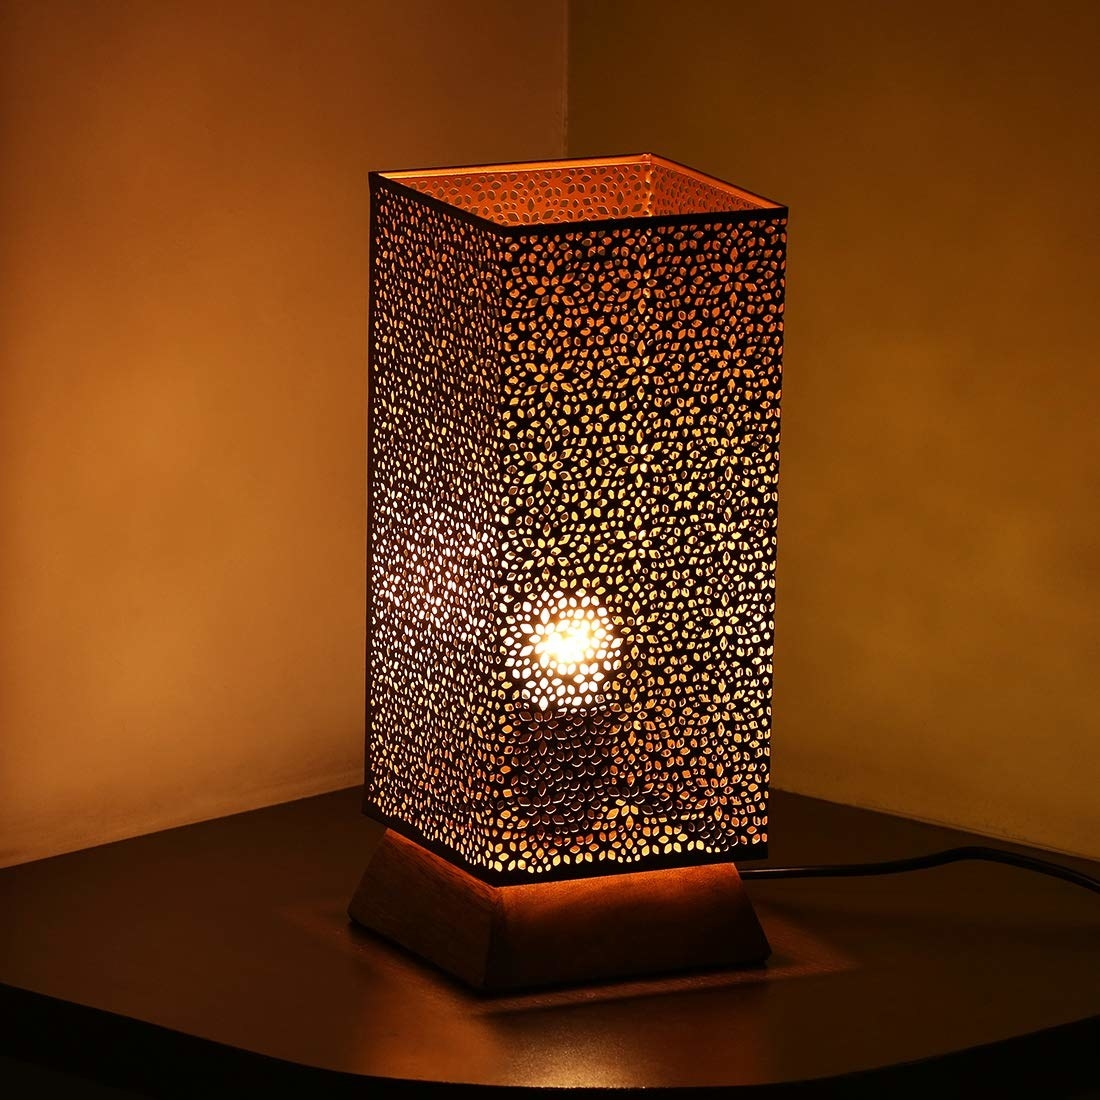 A Moroccan lamp